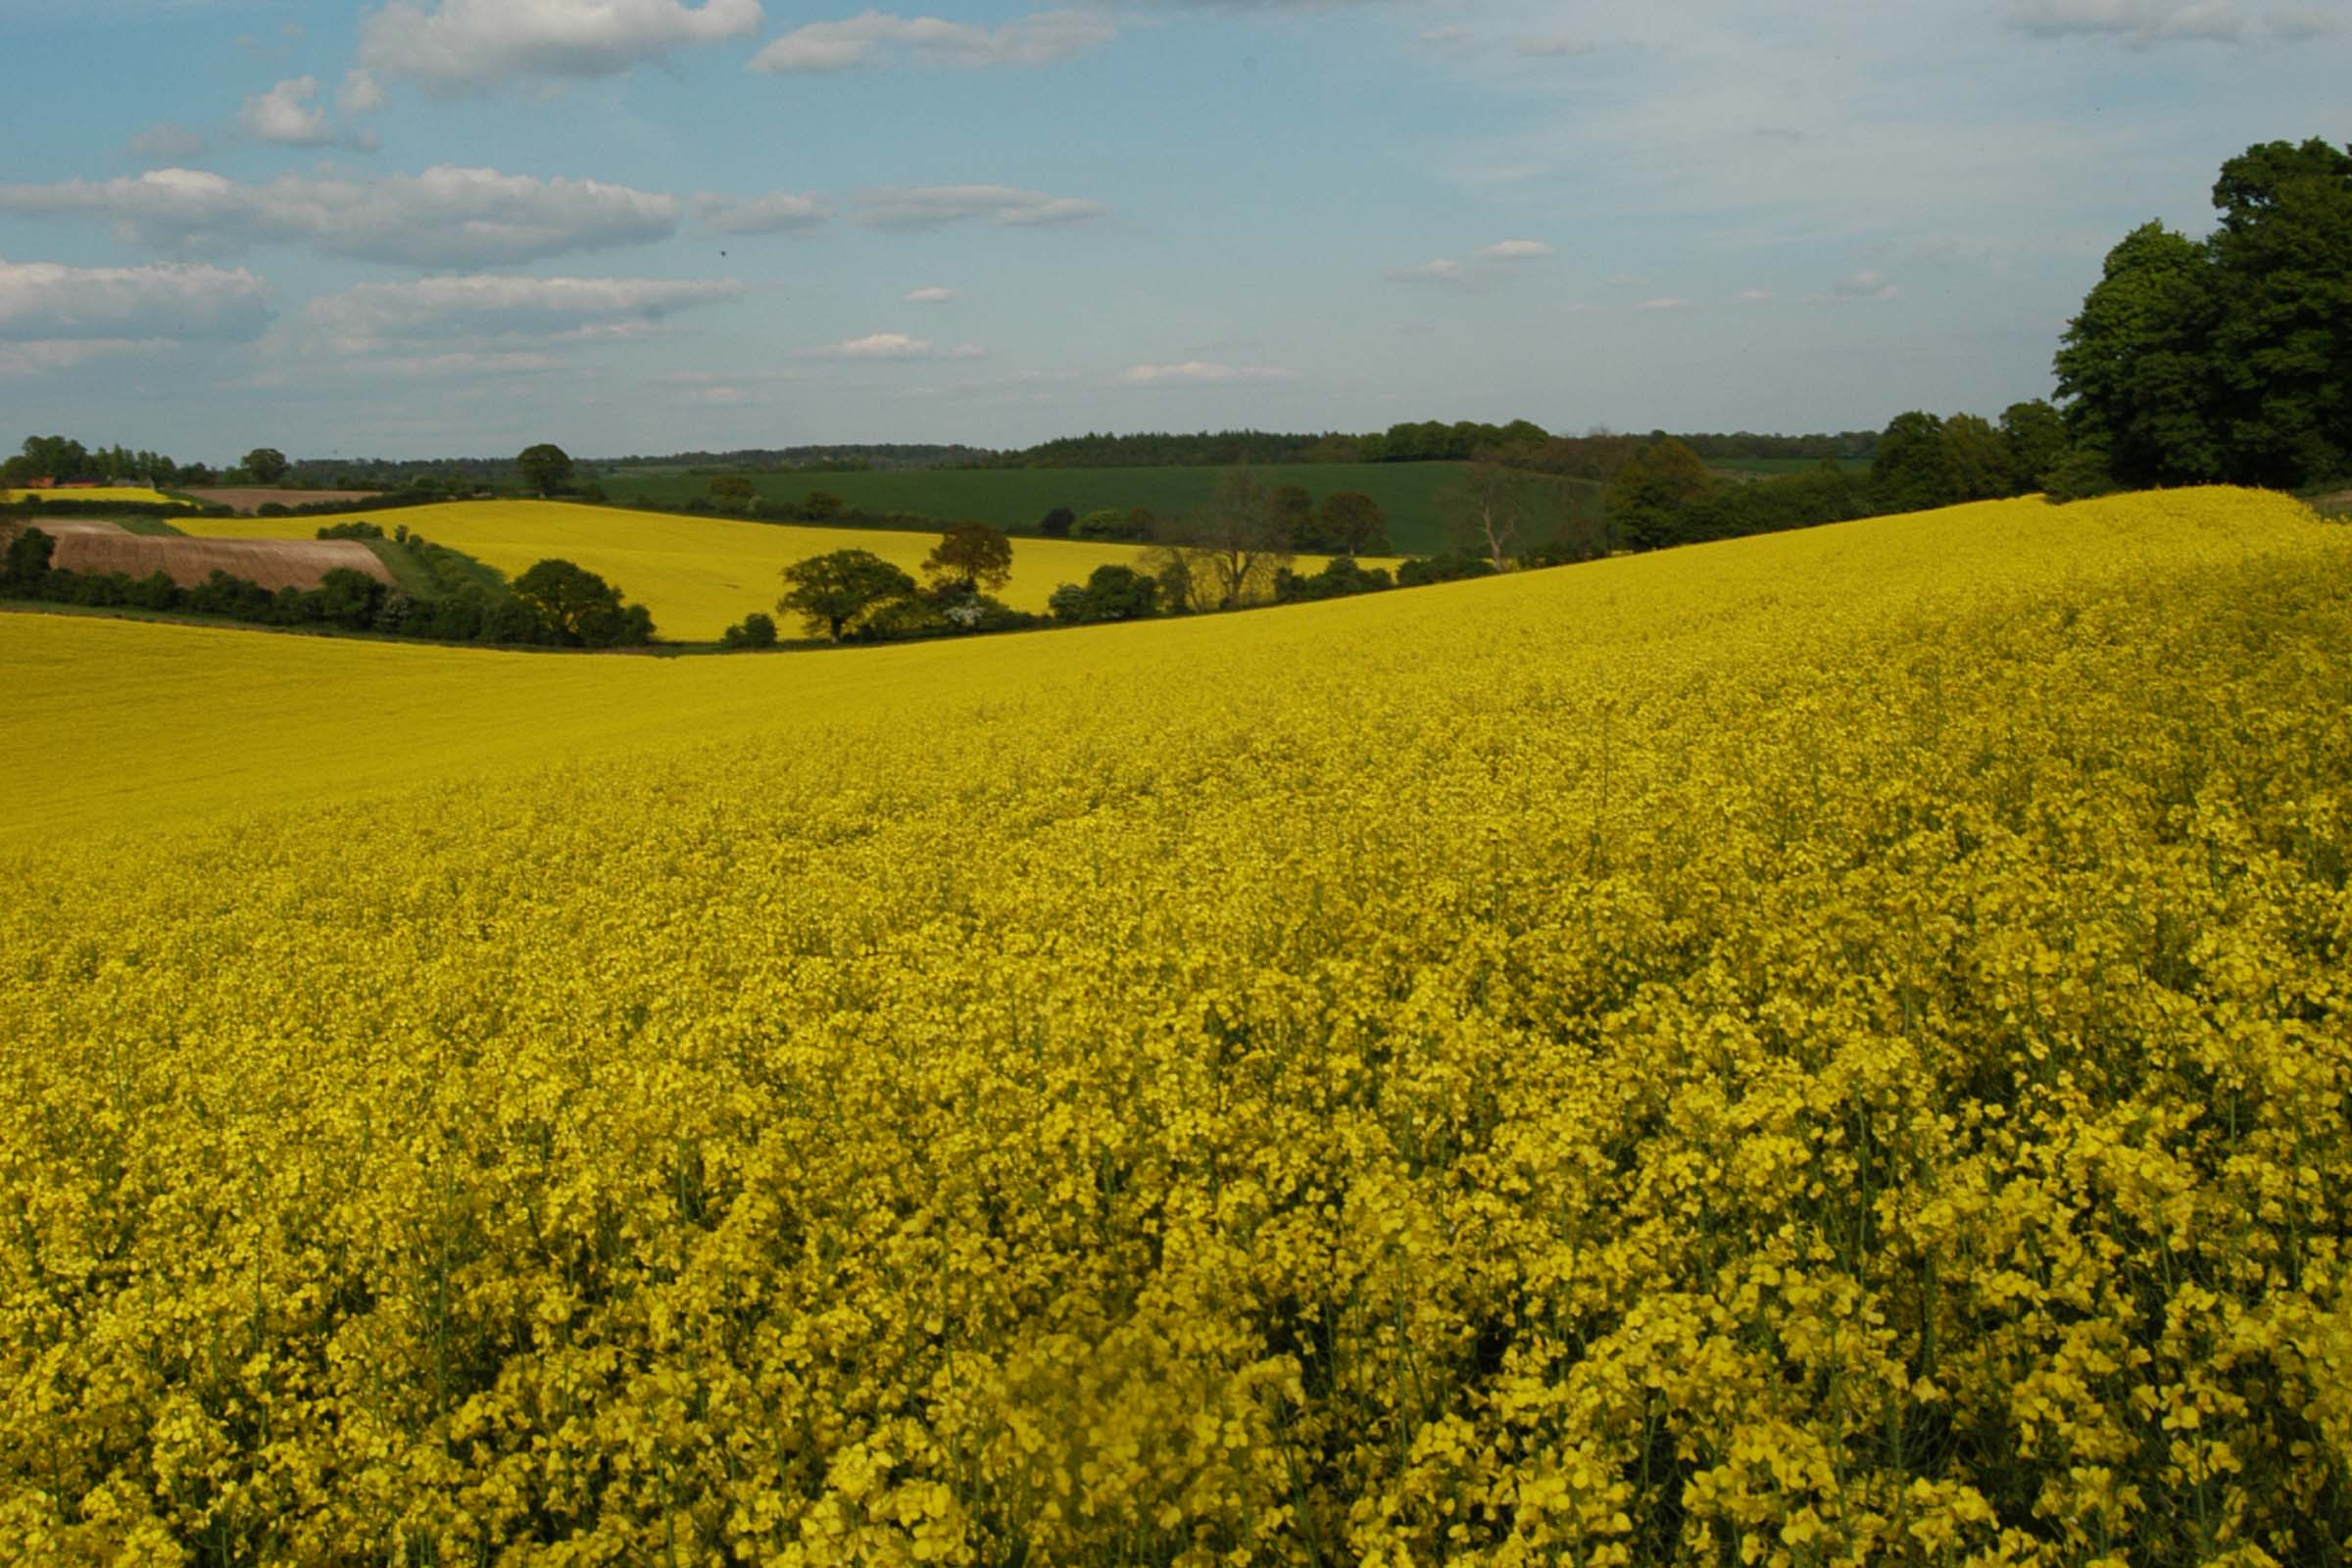 OSR in flower field scene